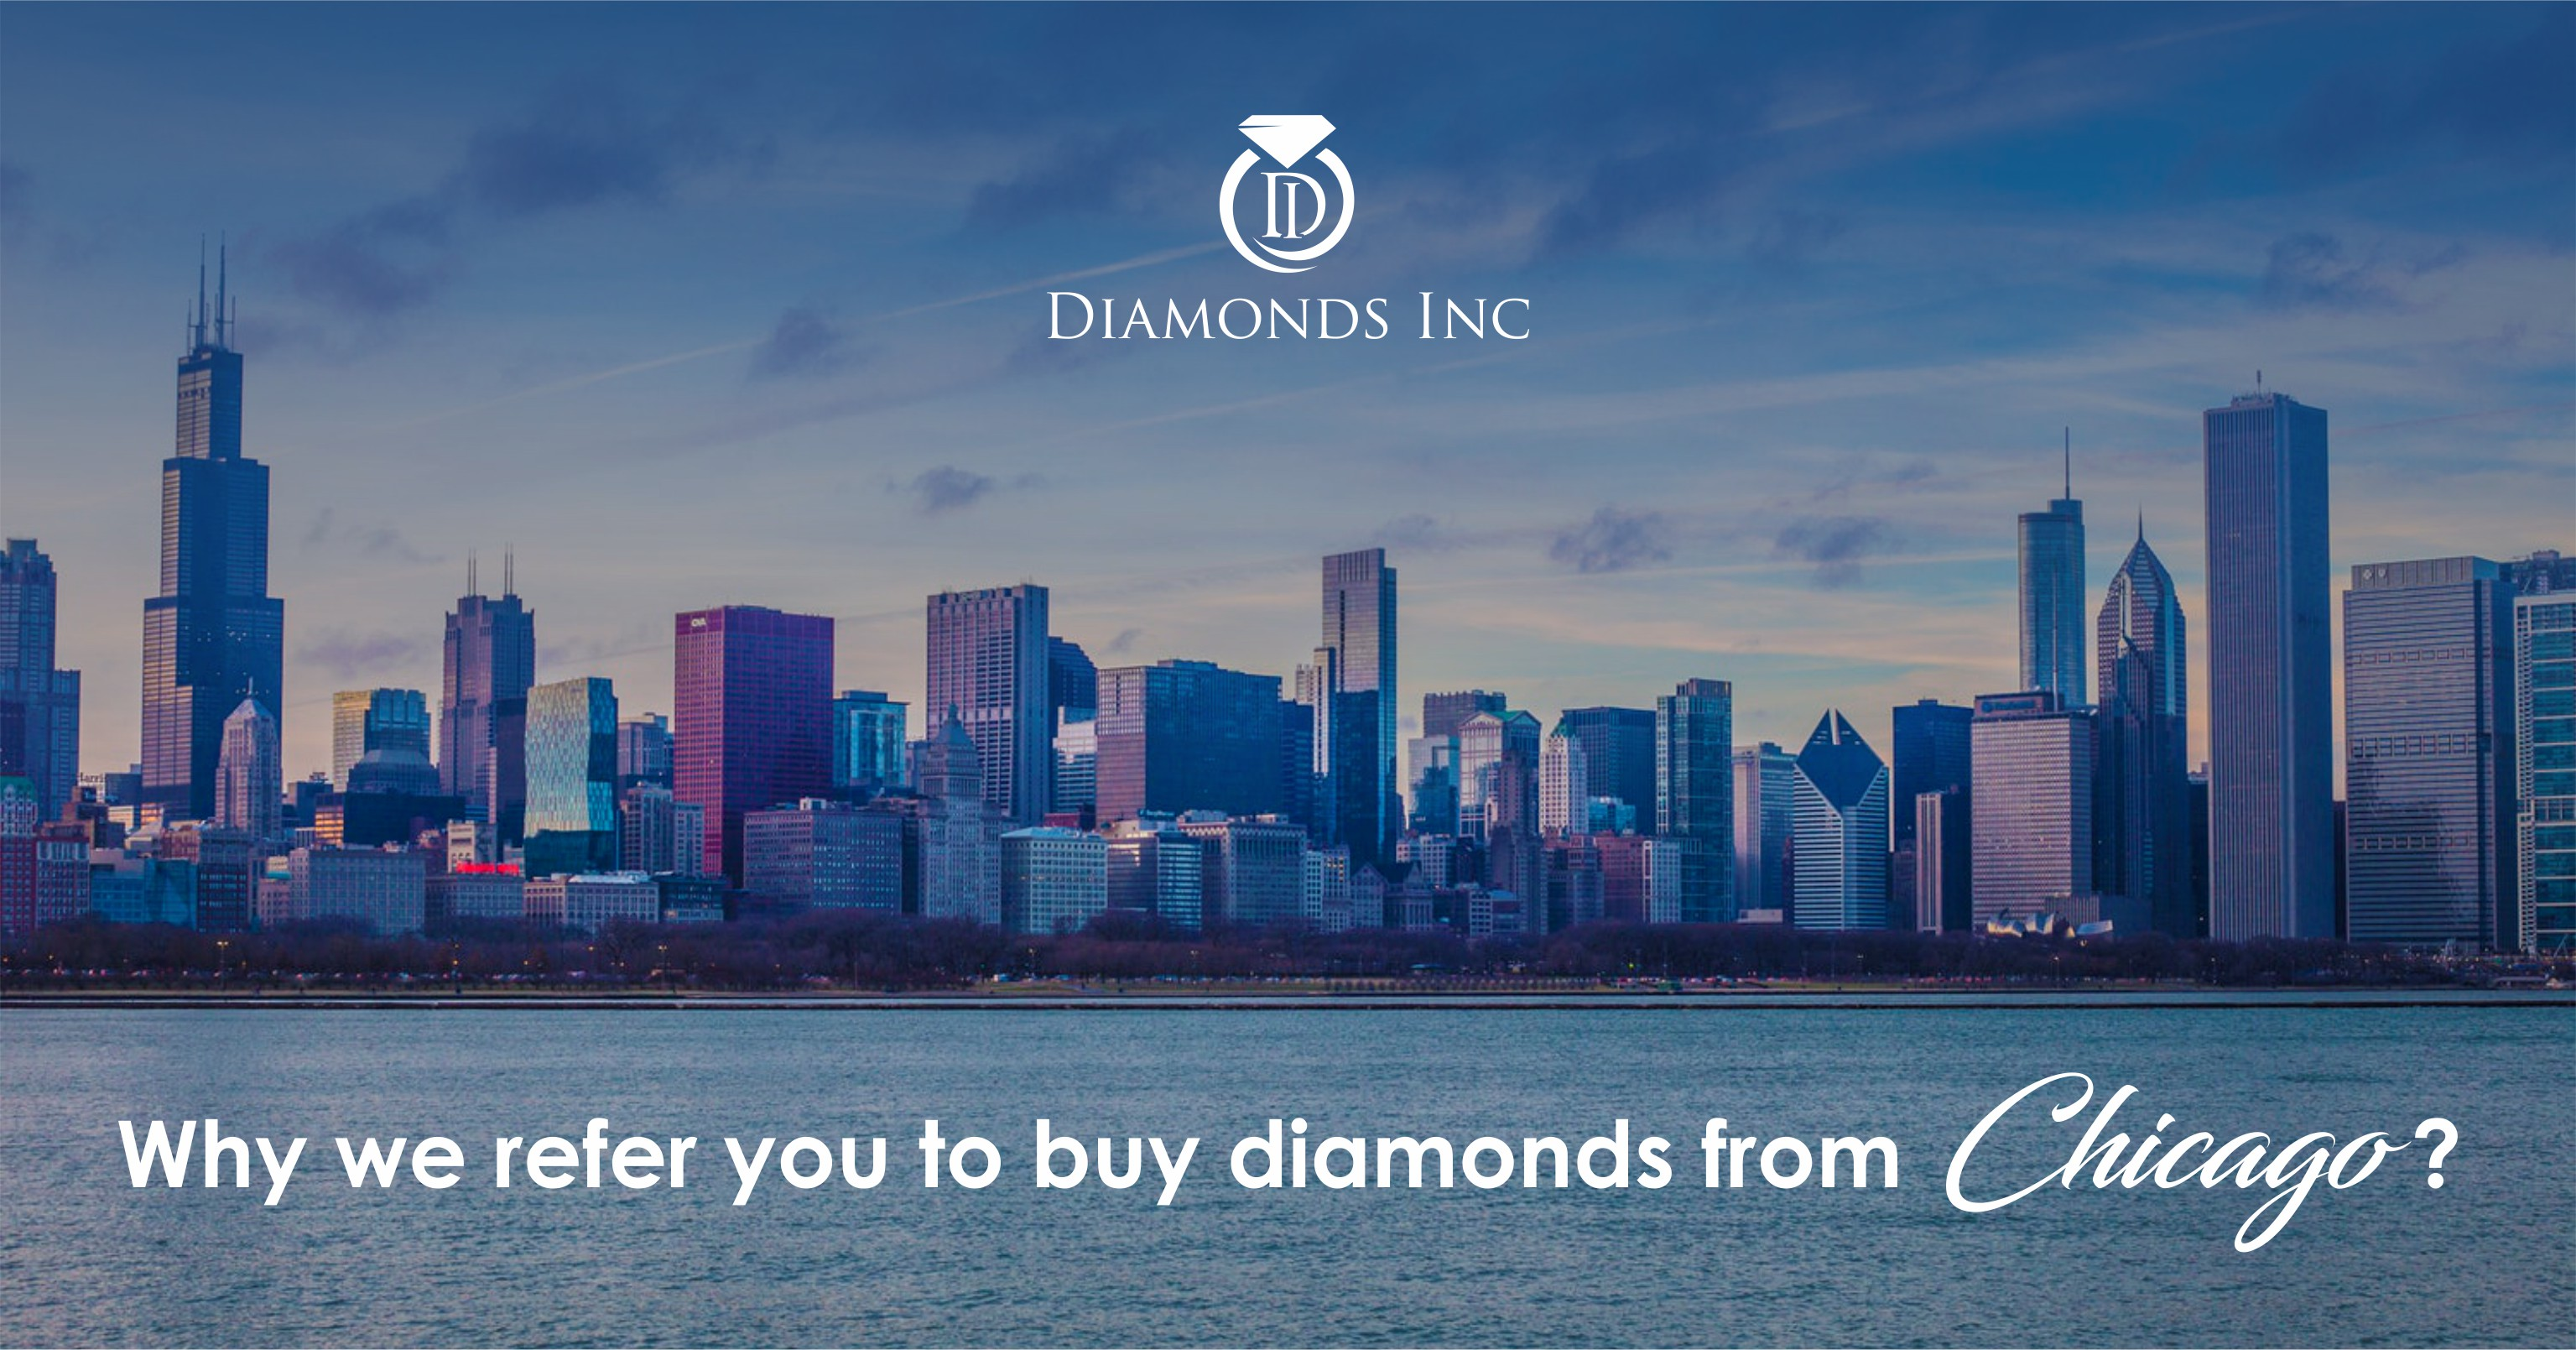 Why We Refer You to Buy Diamonds From Chicago